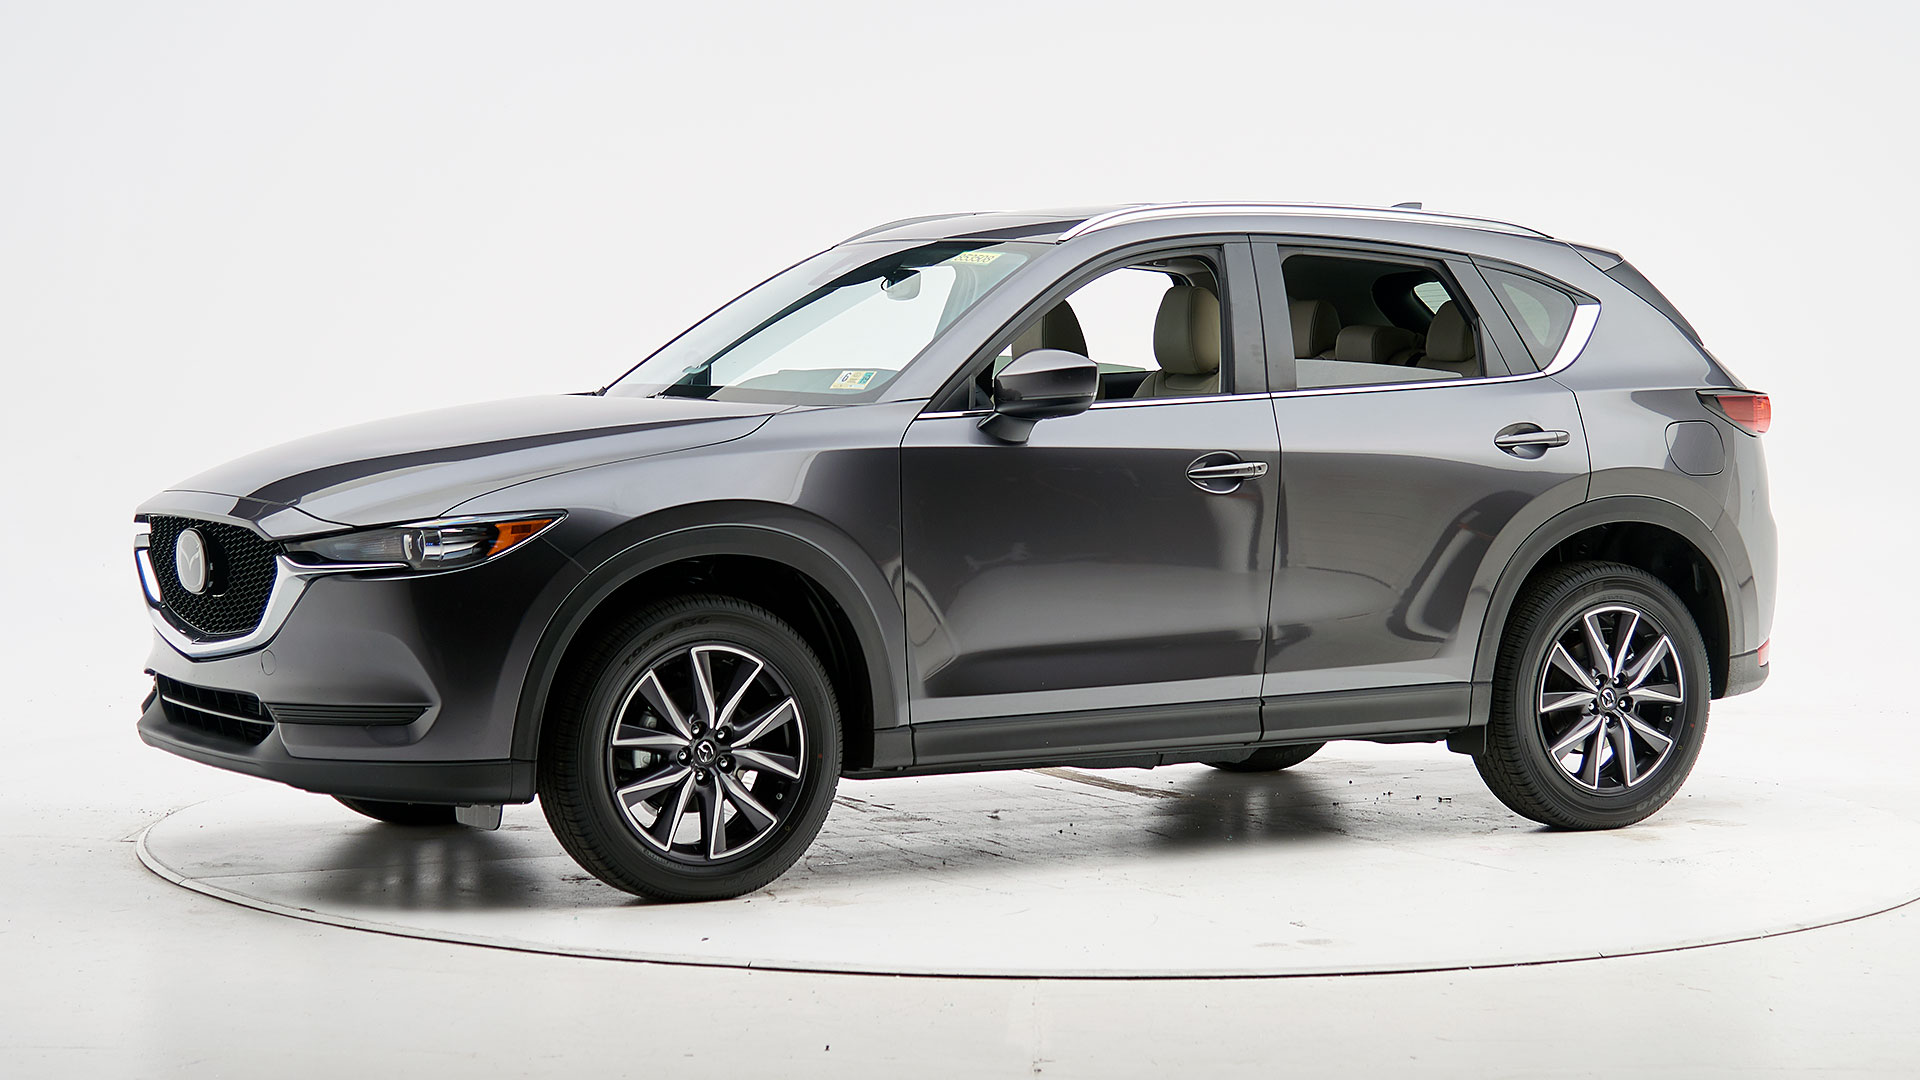 2018 Mazda CX-5 4-door SUV